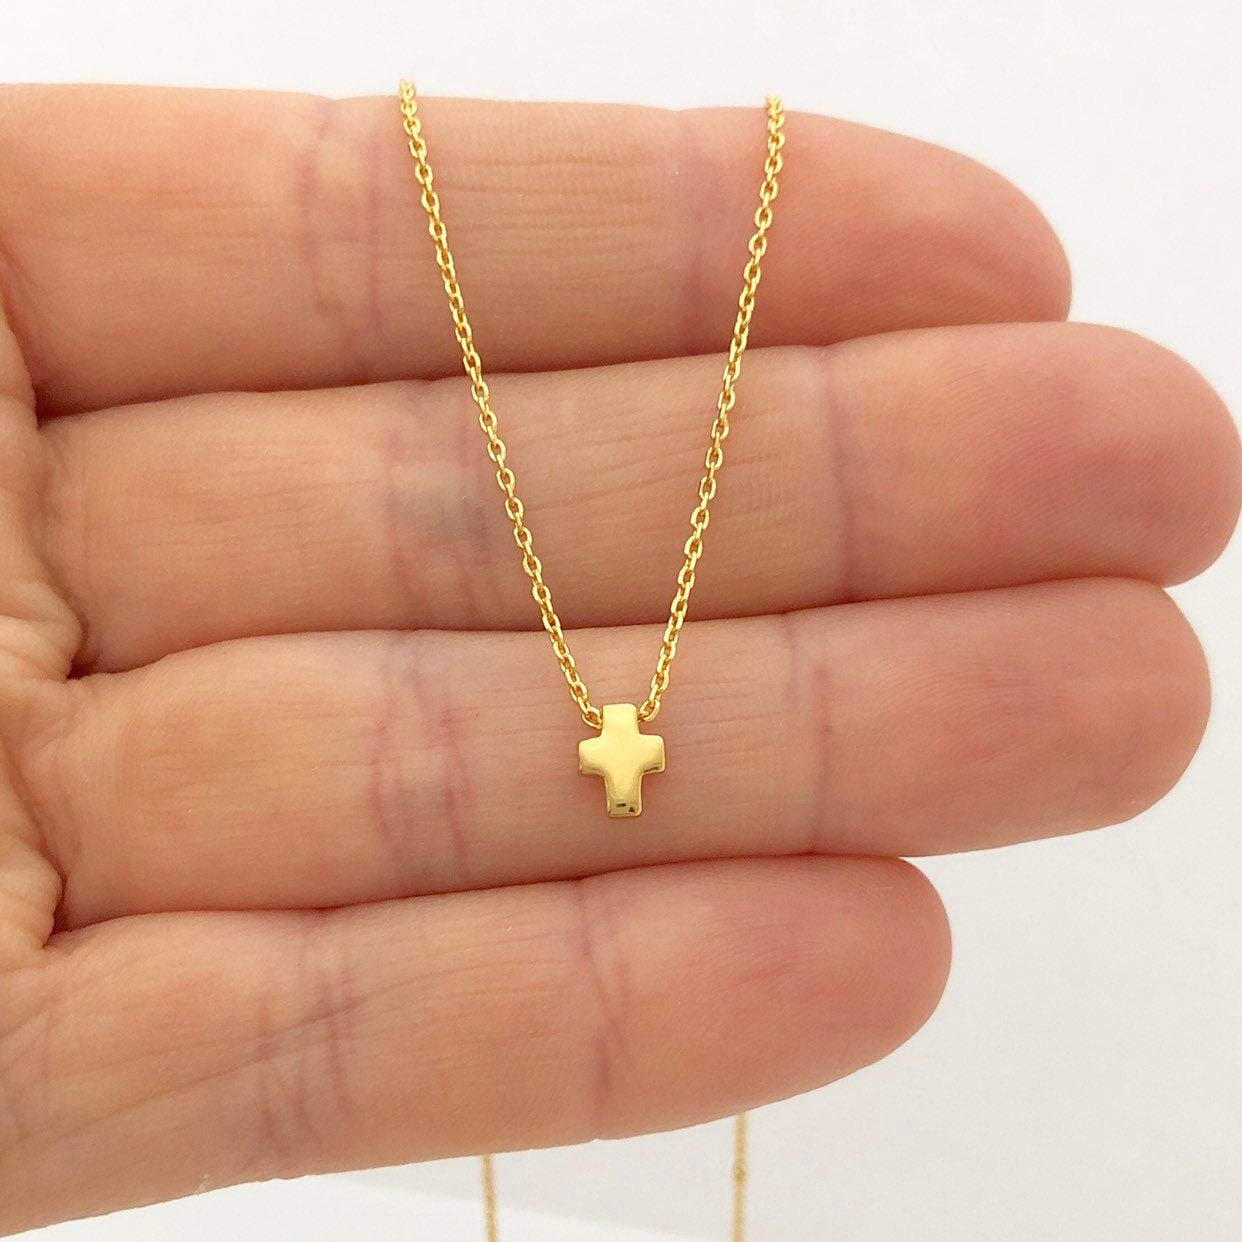 gold plated sterling silver cross necklace adjustable length